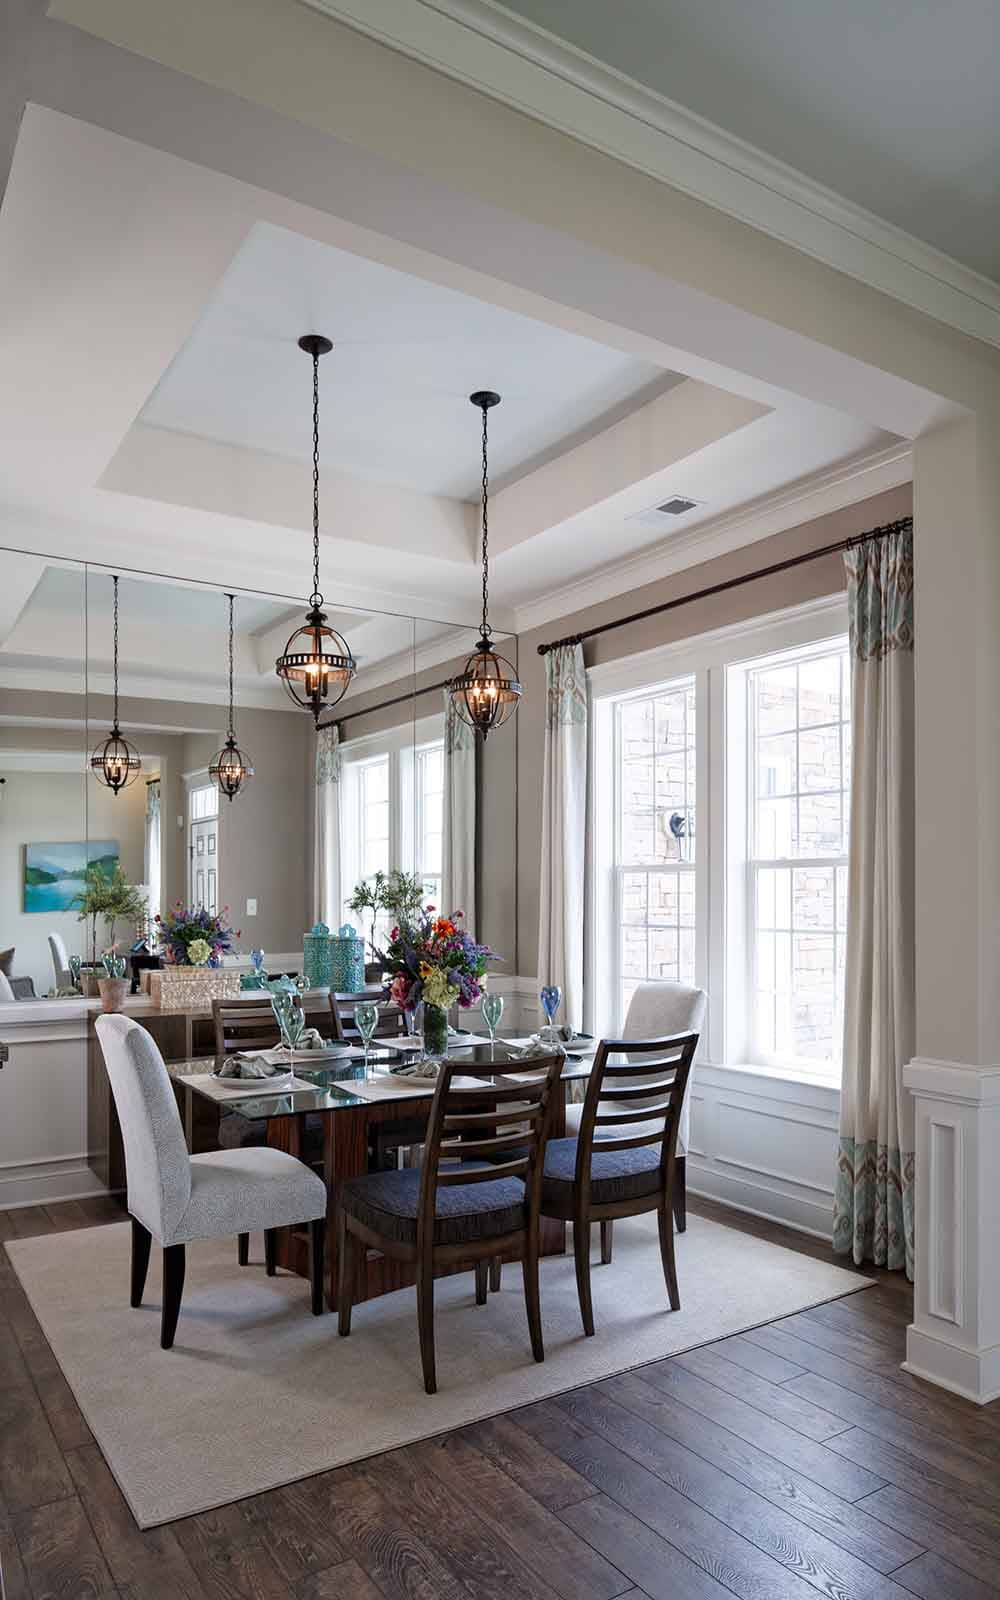 Pearson-dining-room-single-family-homes-easton-md-easton-village-brookfield-residential